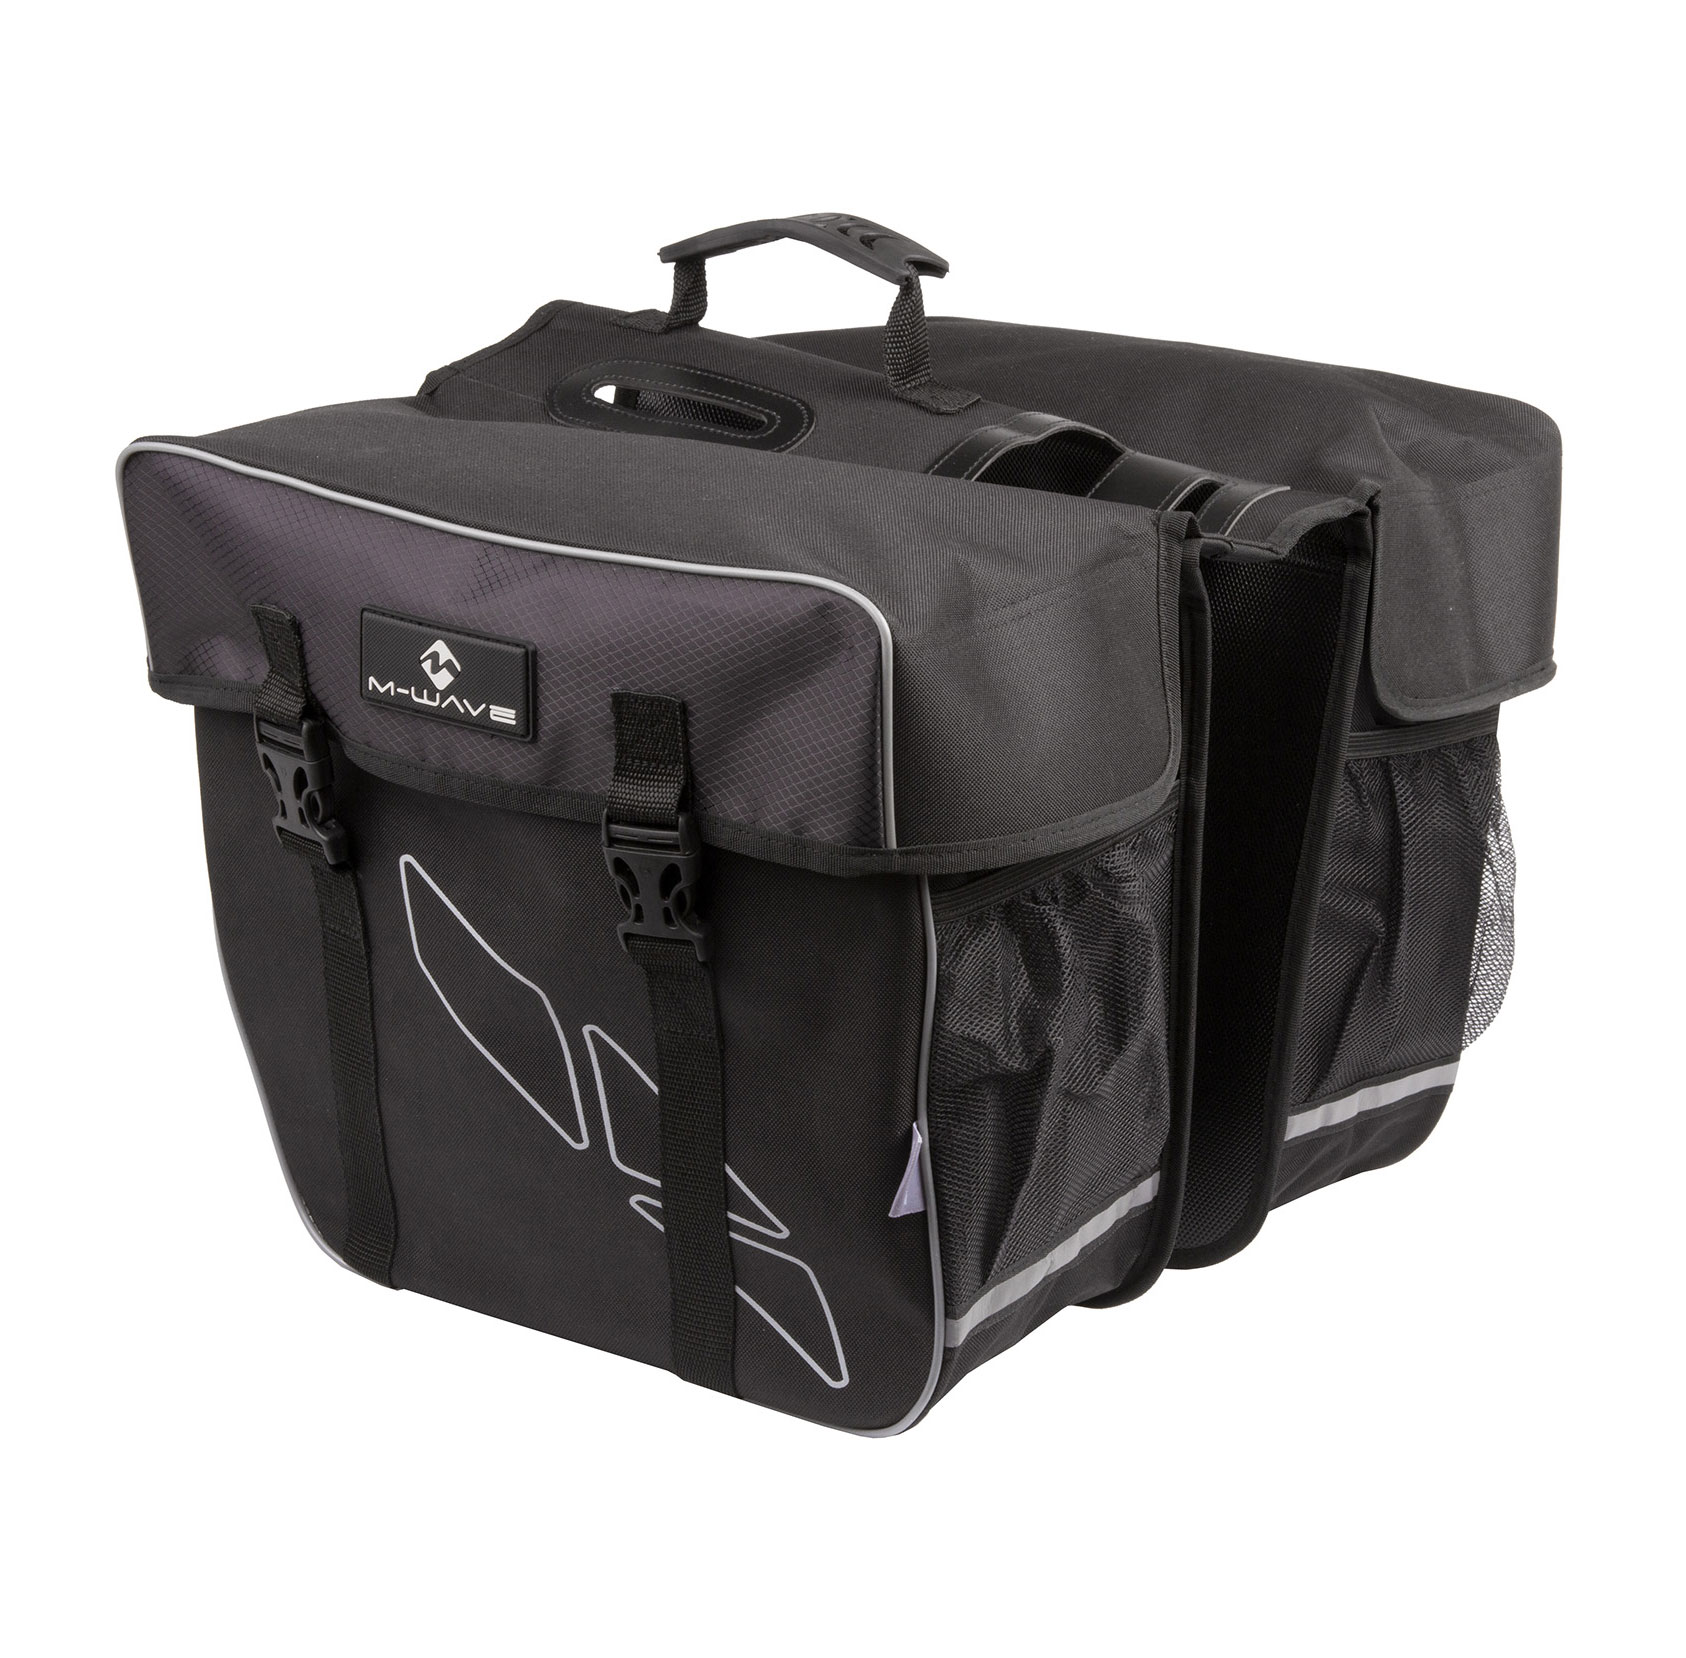 Bisage M-wave double day tripper 30L